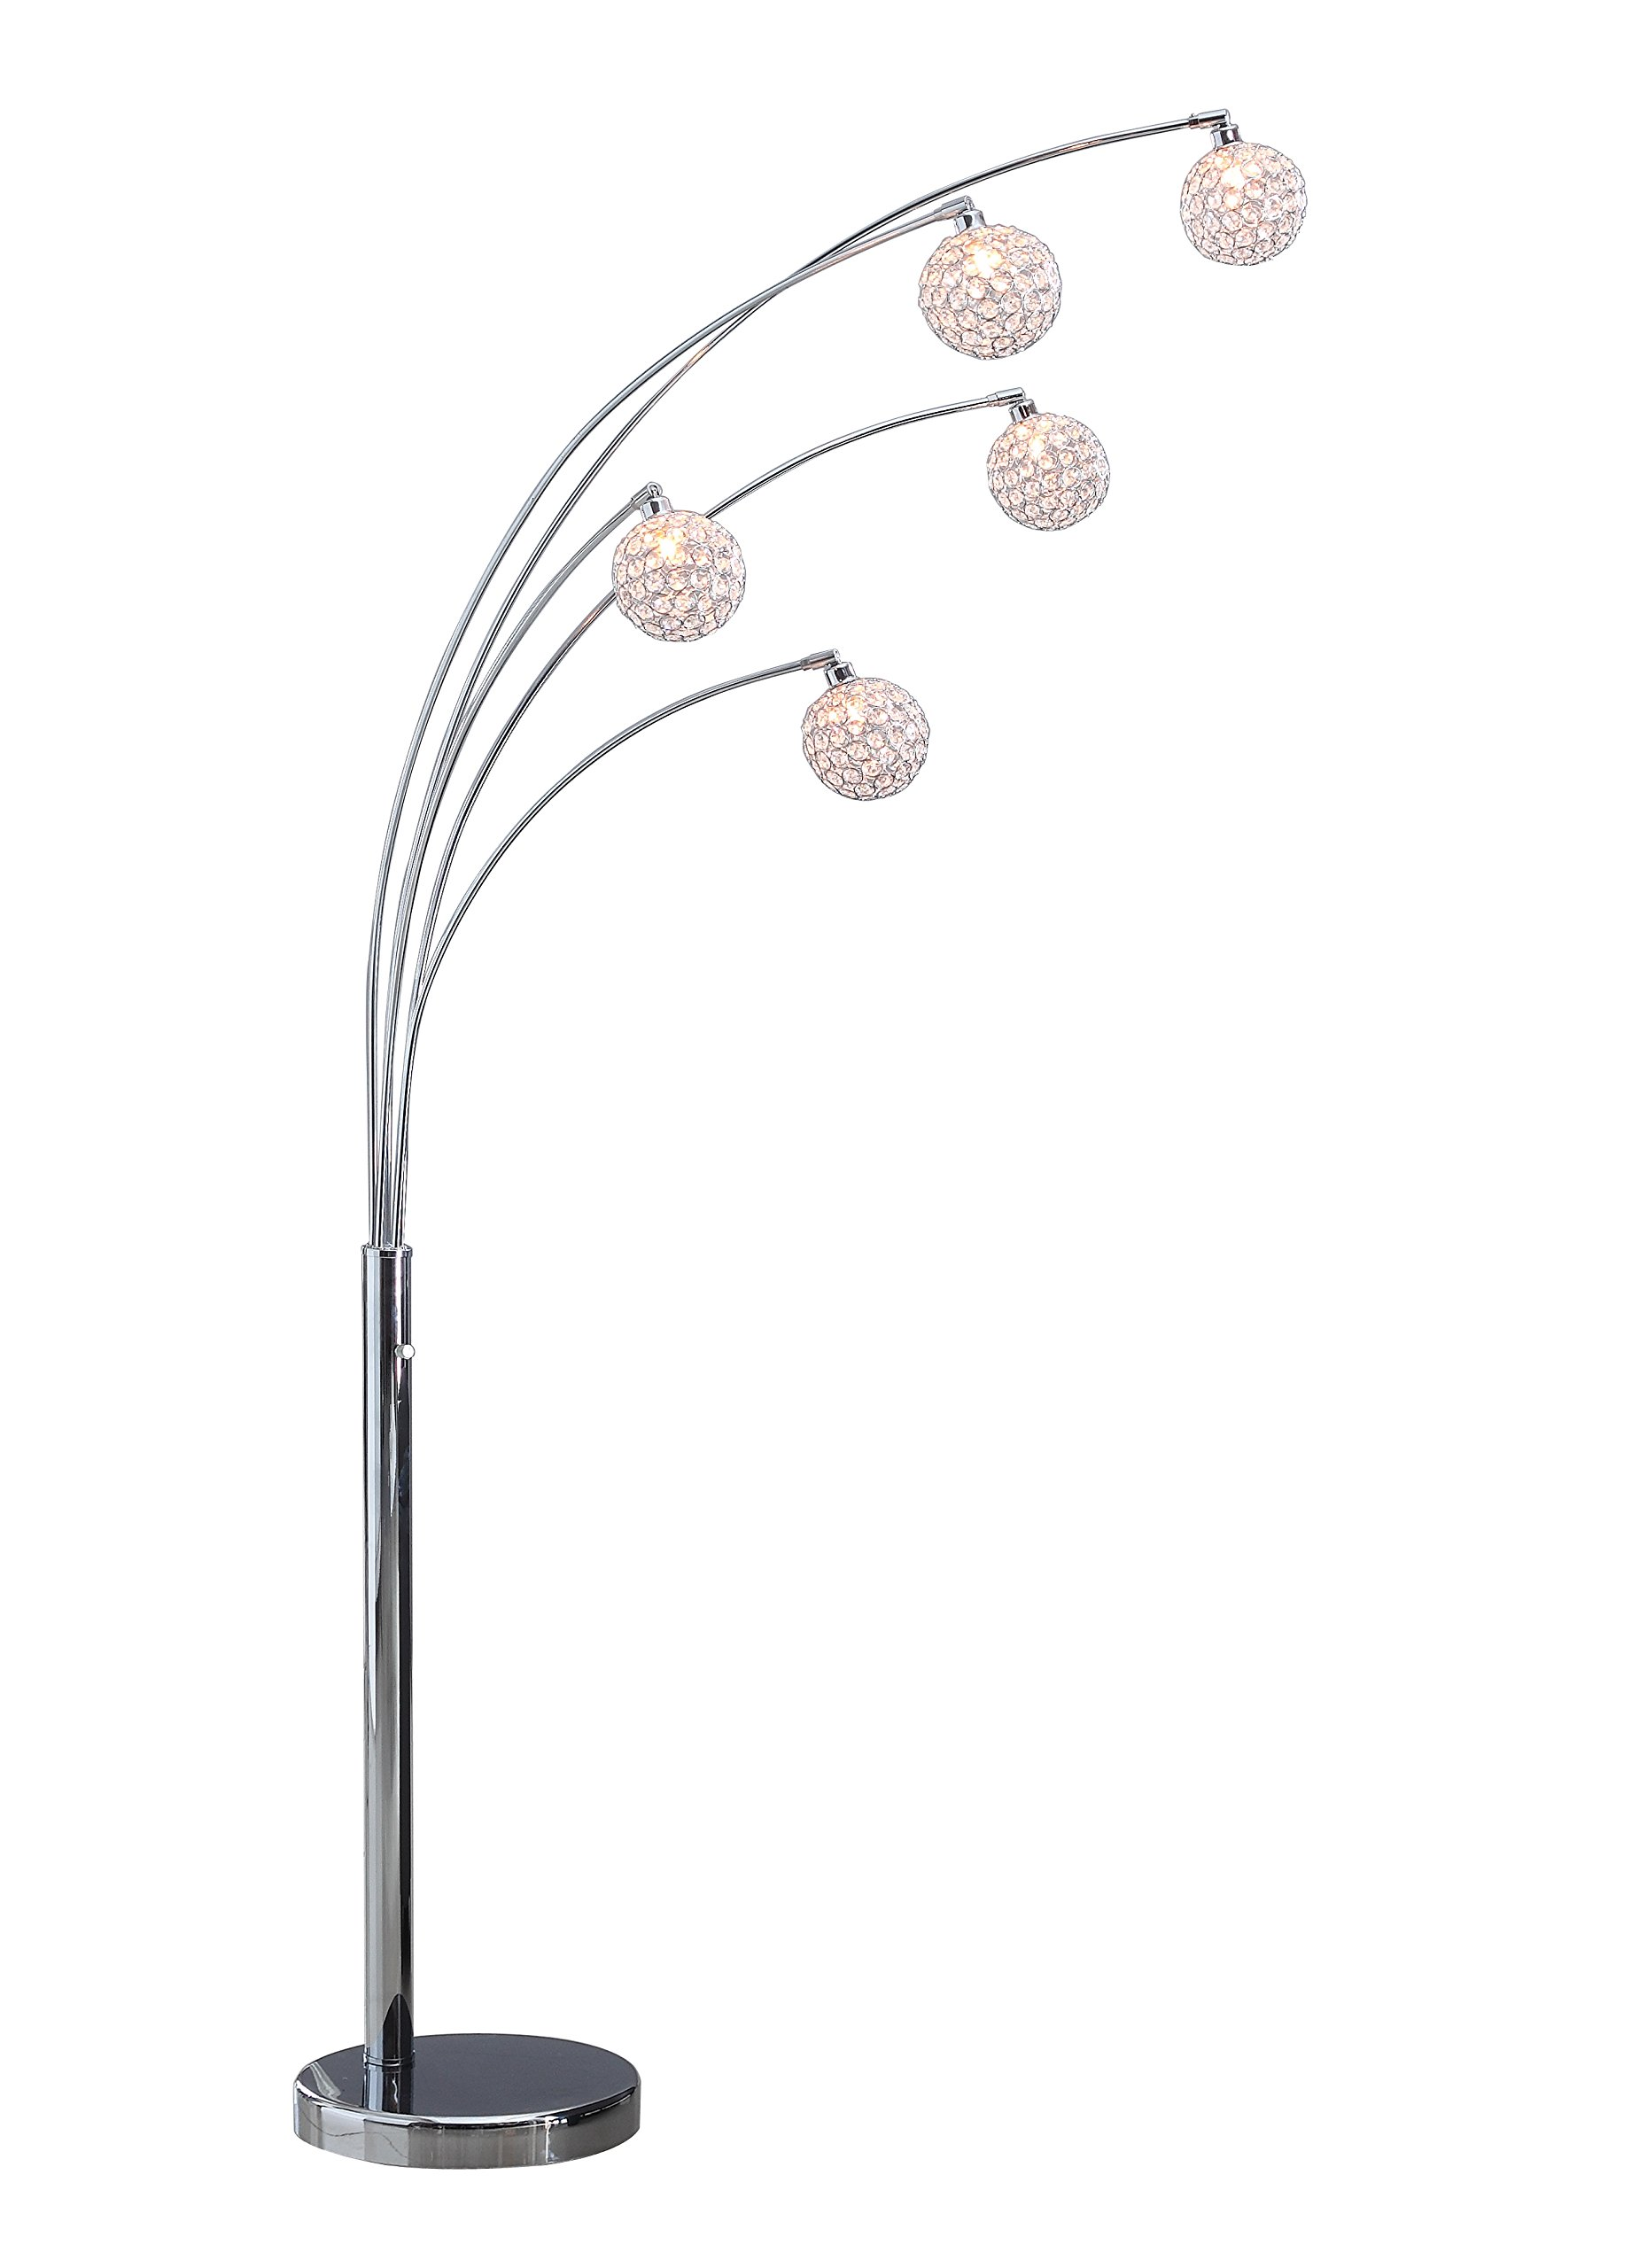 Artiva USA A511118FSN Manhattan Modern Crystal Floor Lamp, 84''H, Chrome by Artiva USA